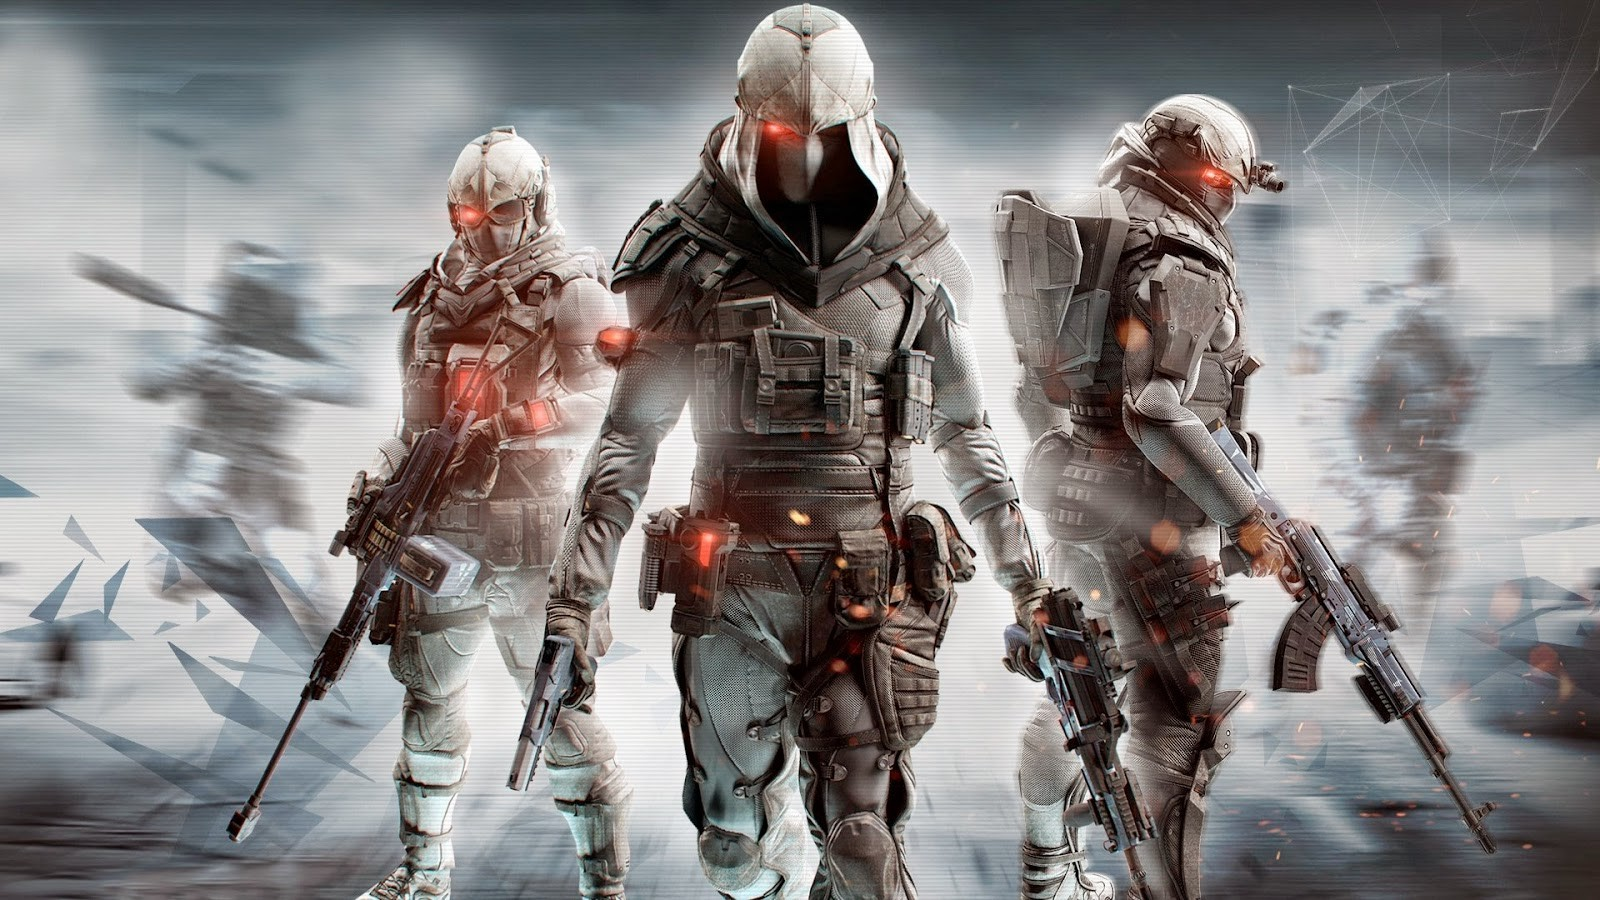 Ghost Recon Future Soldier Hd Wallpaper Tom Clancys Ghost Recon Phantoms Video Games Xbox 360